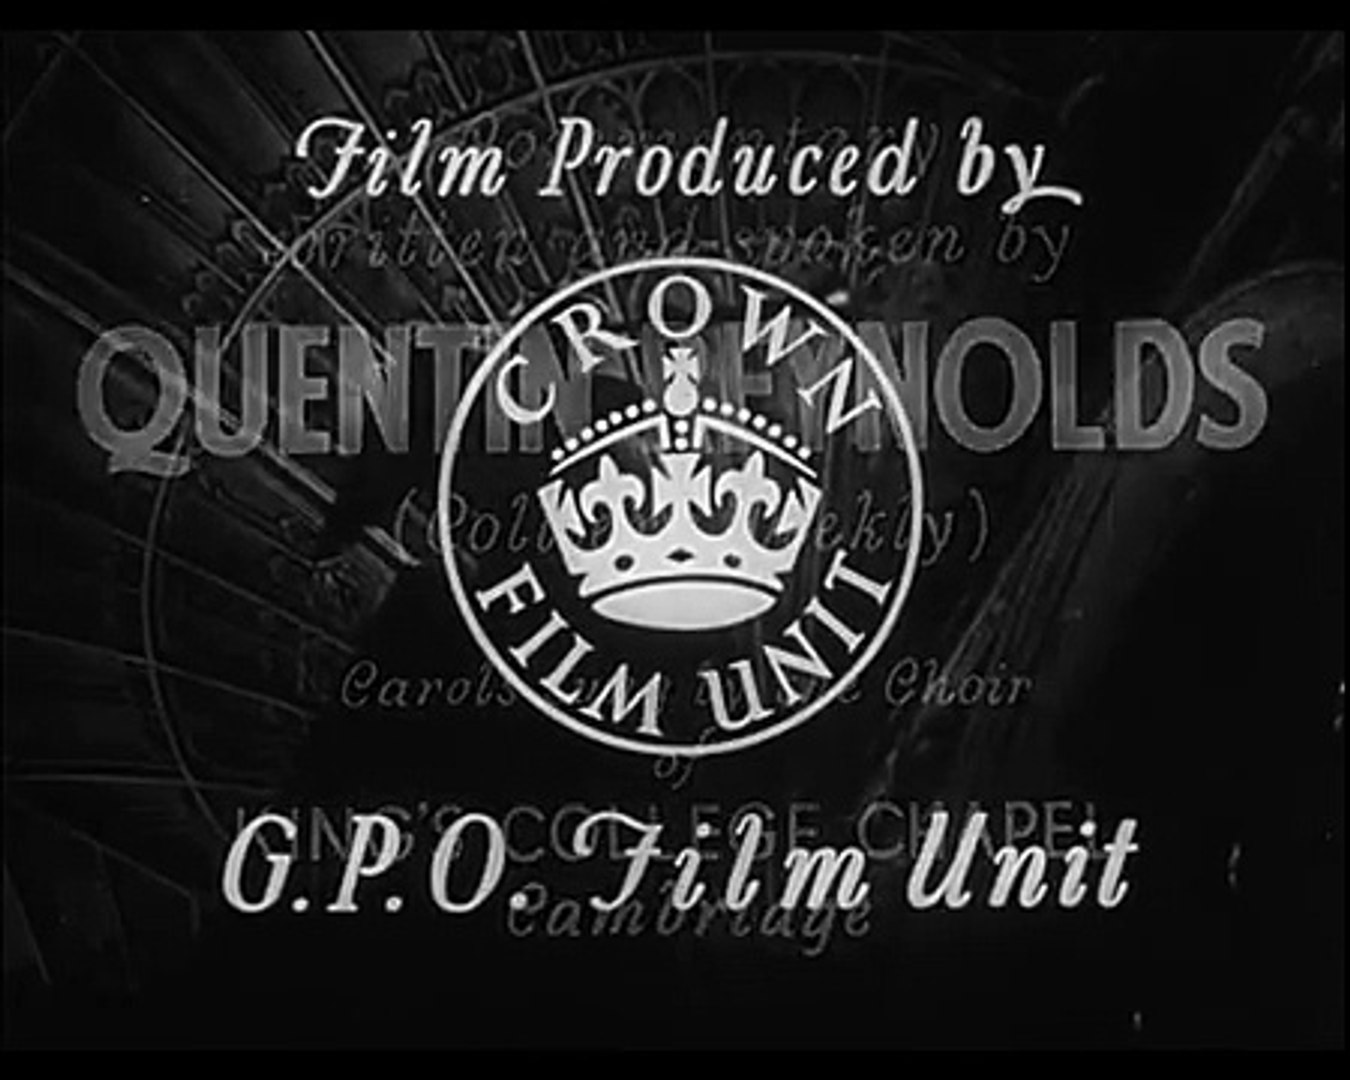 Christmas Under Fire (1941)   BFI National Archive